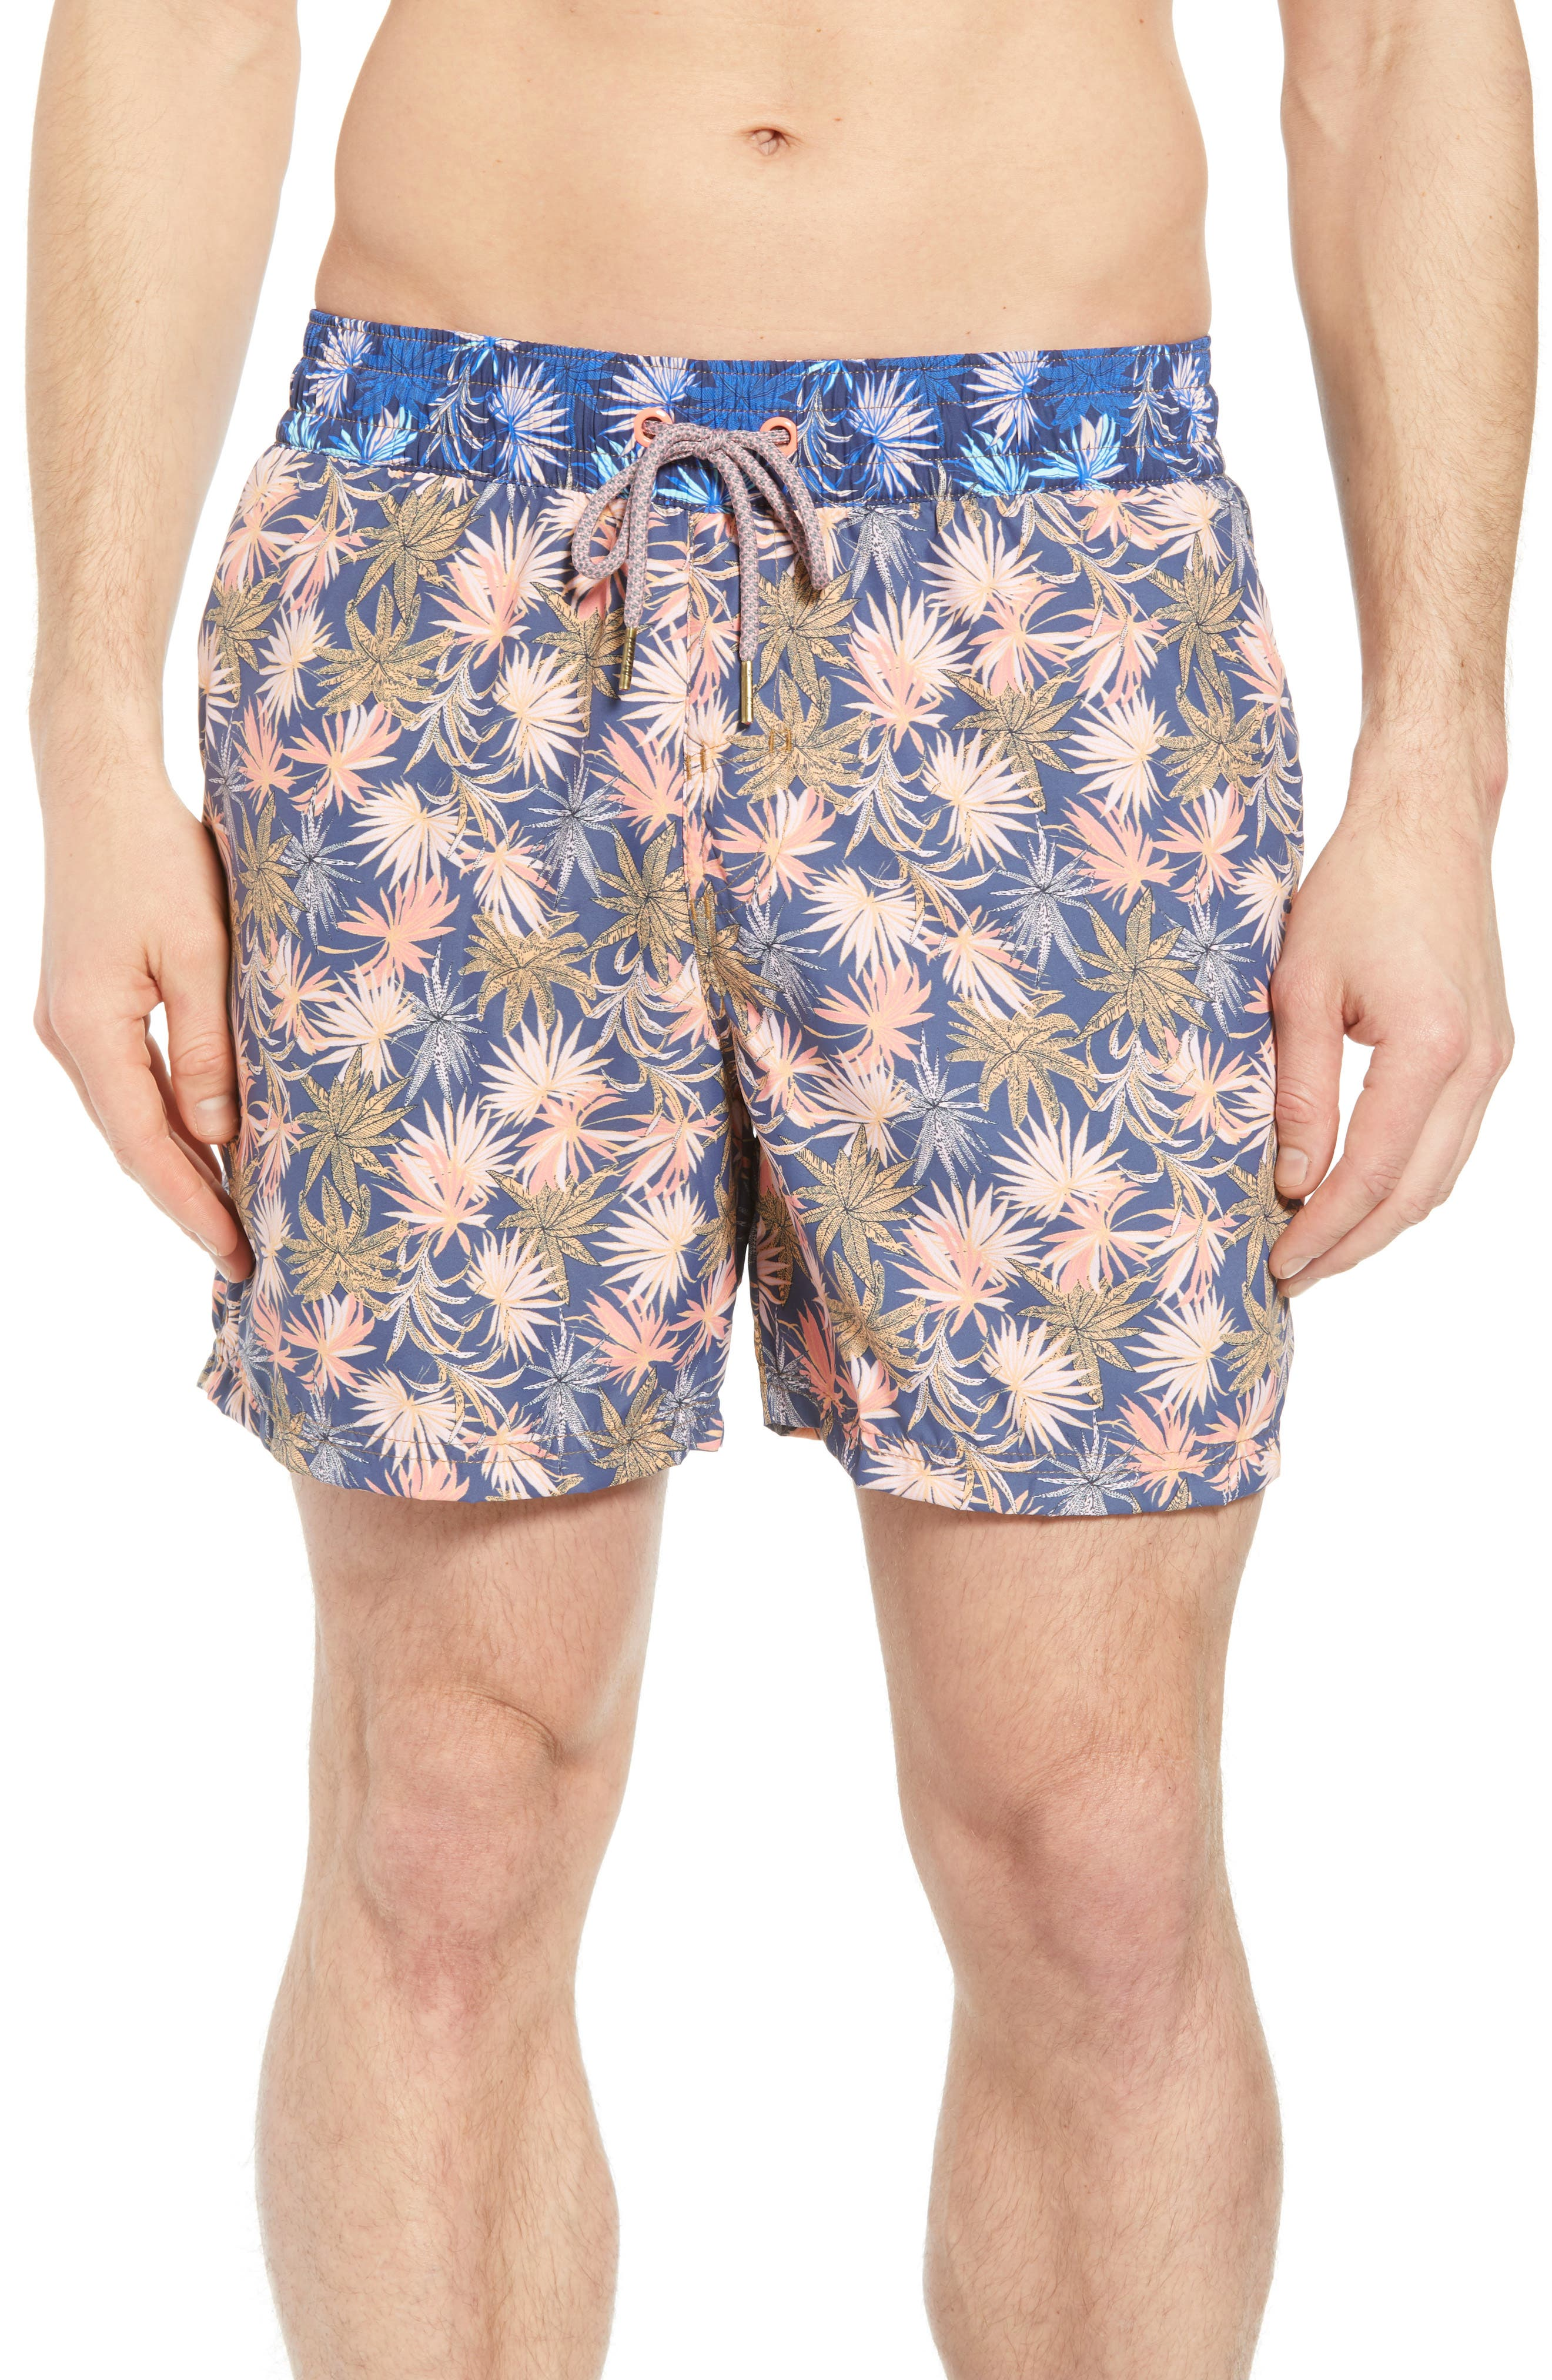 Kickflip Sport Fit Swim Trunks,                             Main thumbnail 1, color,                             400